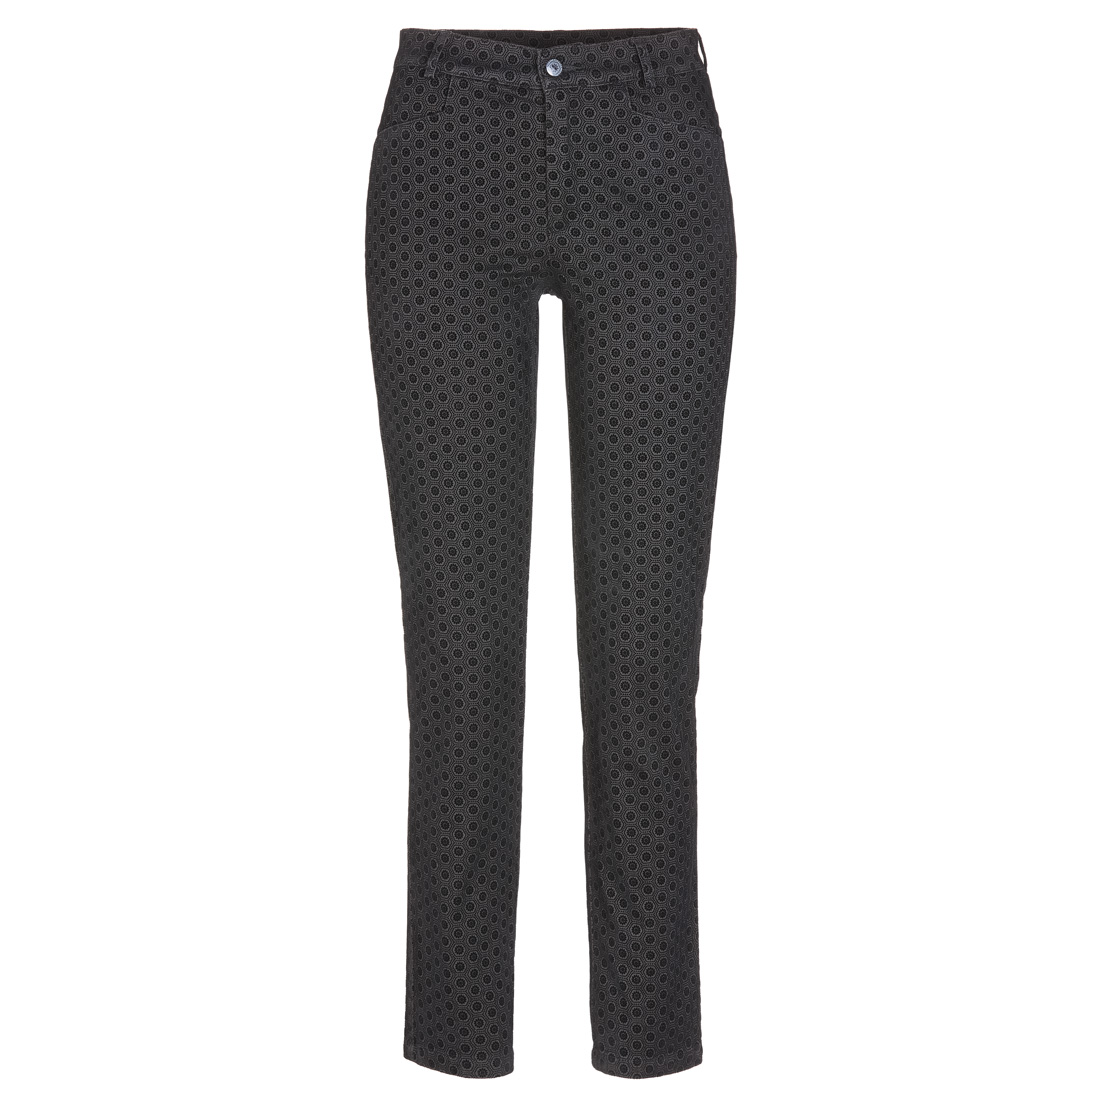 Jacquard Stretch 7/8 Hose